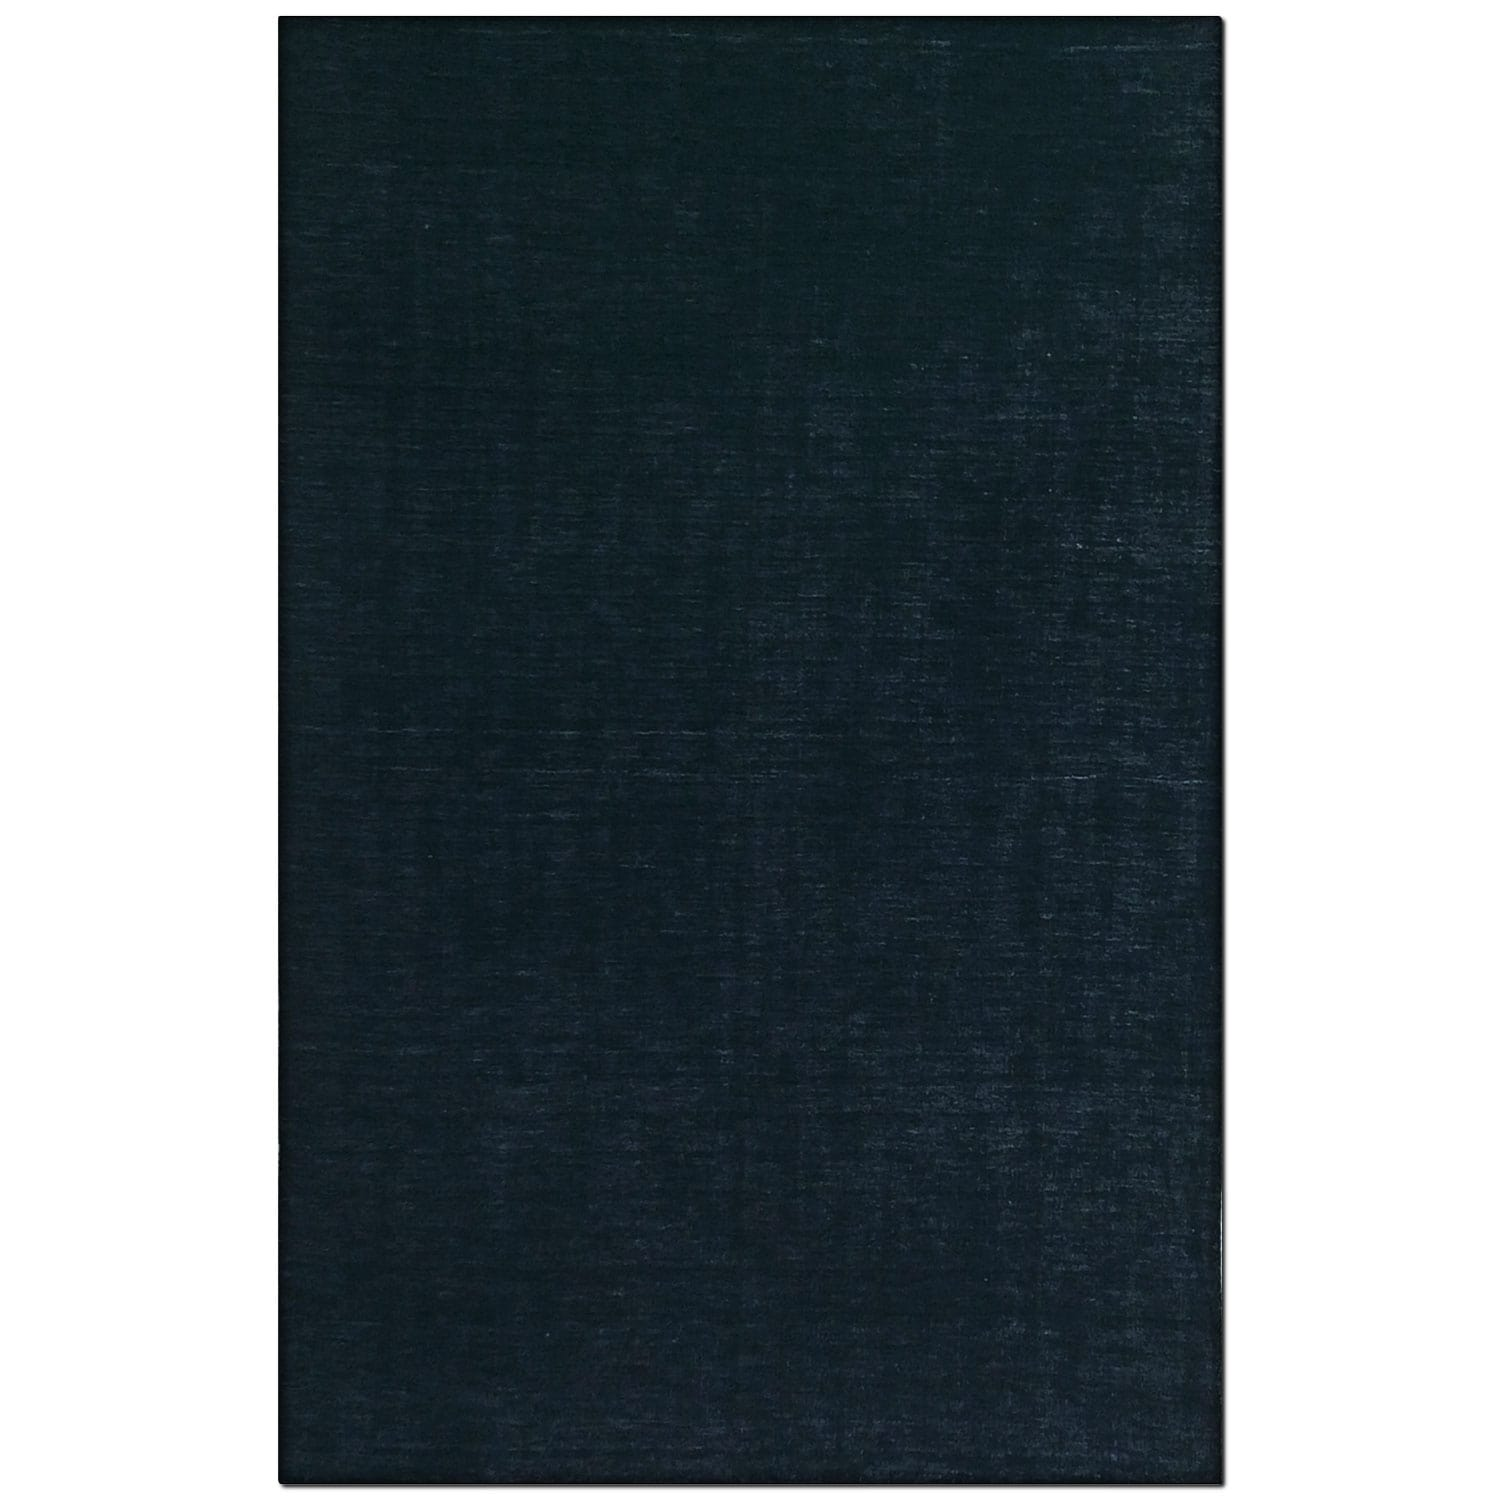 Basics 5' x 8' Area Rug - Black